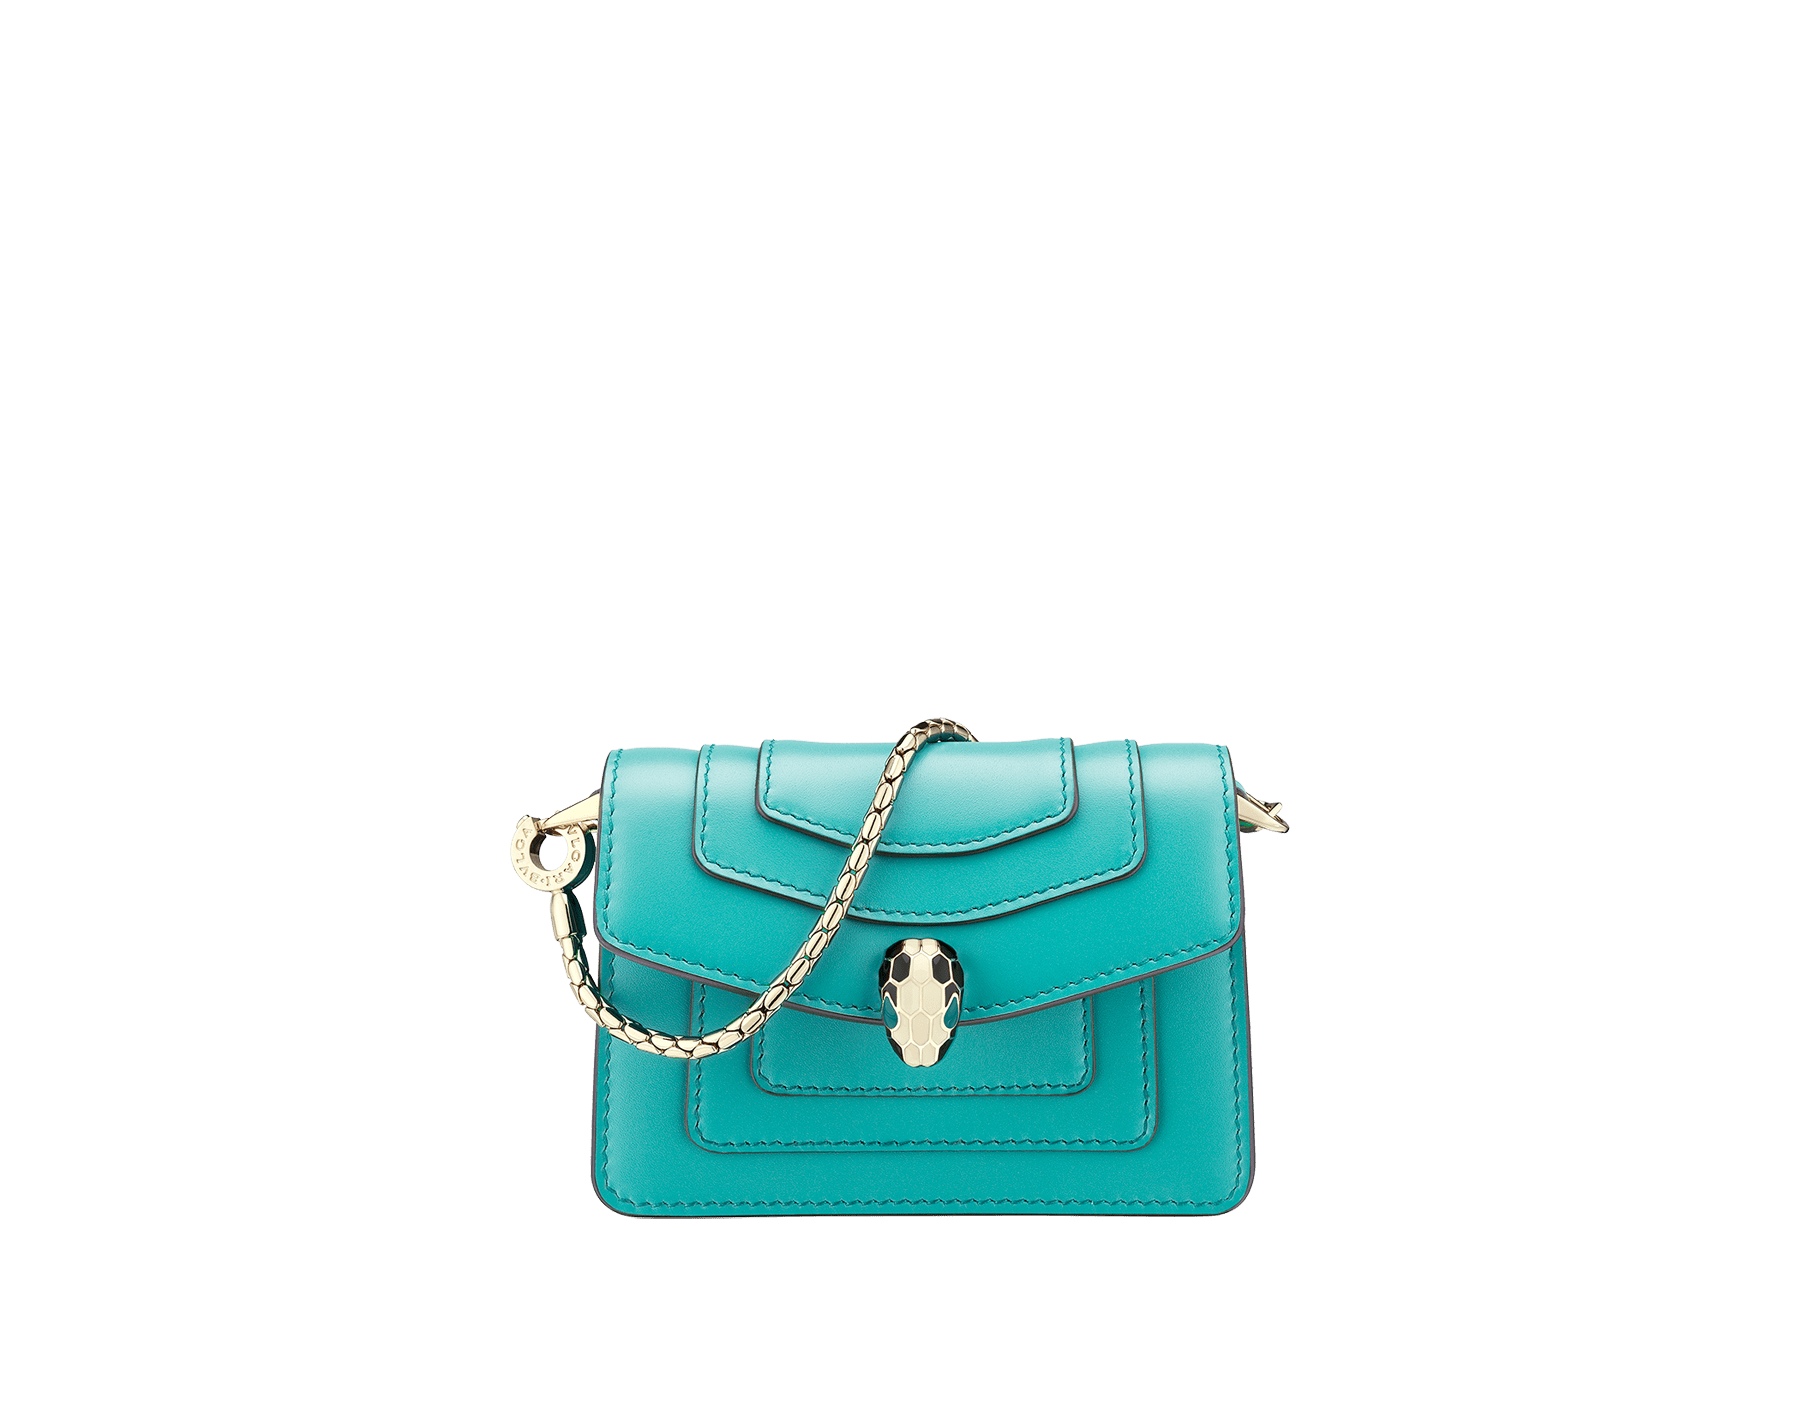 Bag charm Serpenti Forever miniature in arctic jade calf leather and red nappa lining. Iconic brass light gold plated snakehead stud closure enameled in black and white agate and finished with green enamel eyes. 289254 image 1